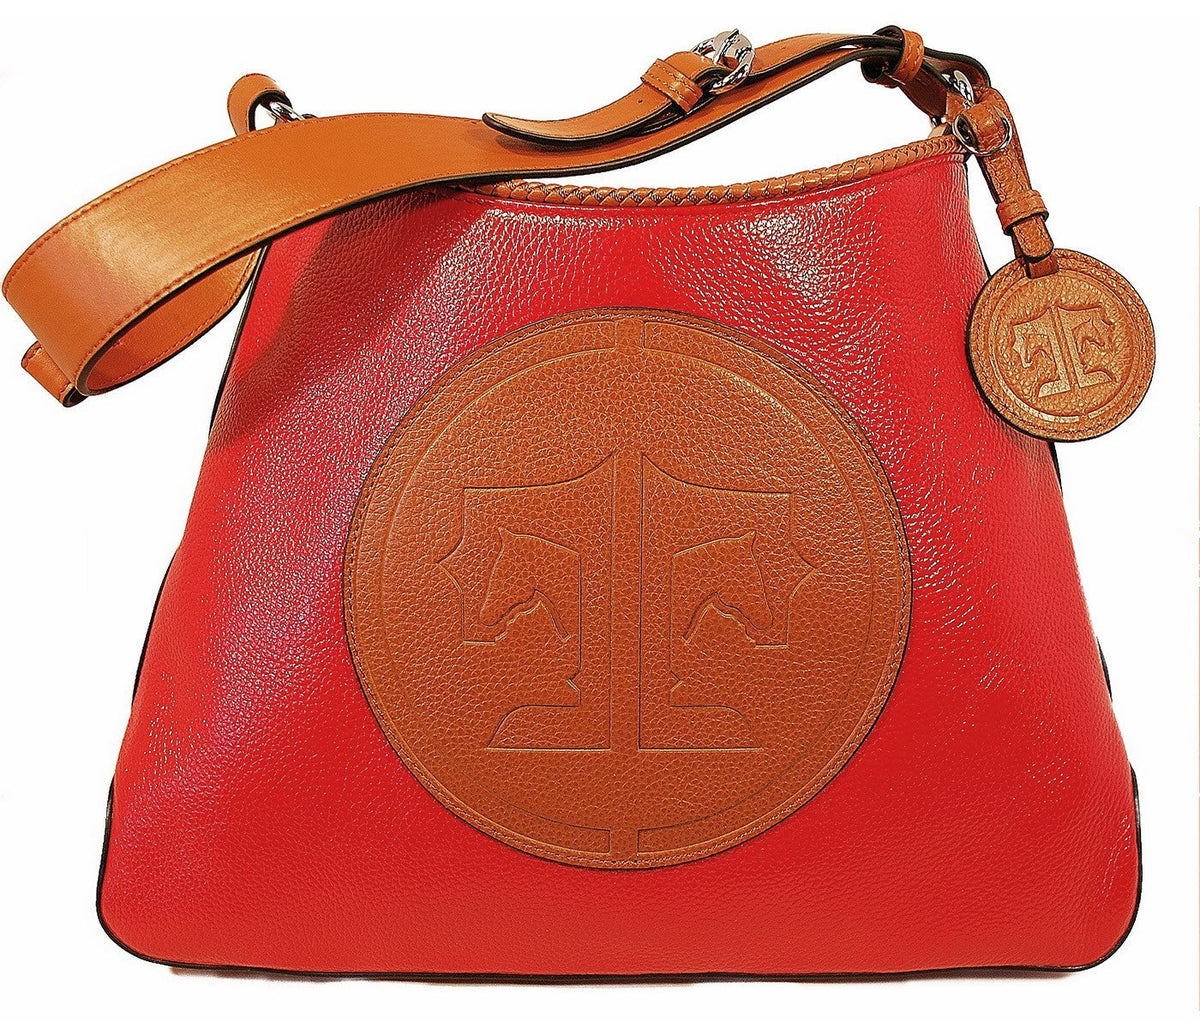 Tucker Tweed Leather Handbags Scarlet/Chestnut / Signature The Tweed Manor Tote: Signature